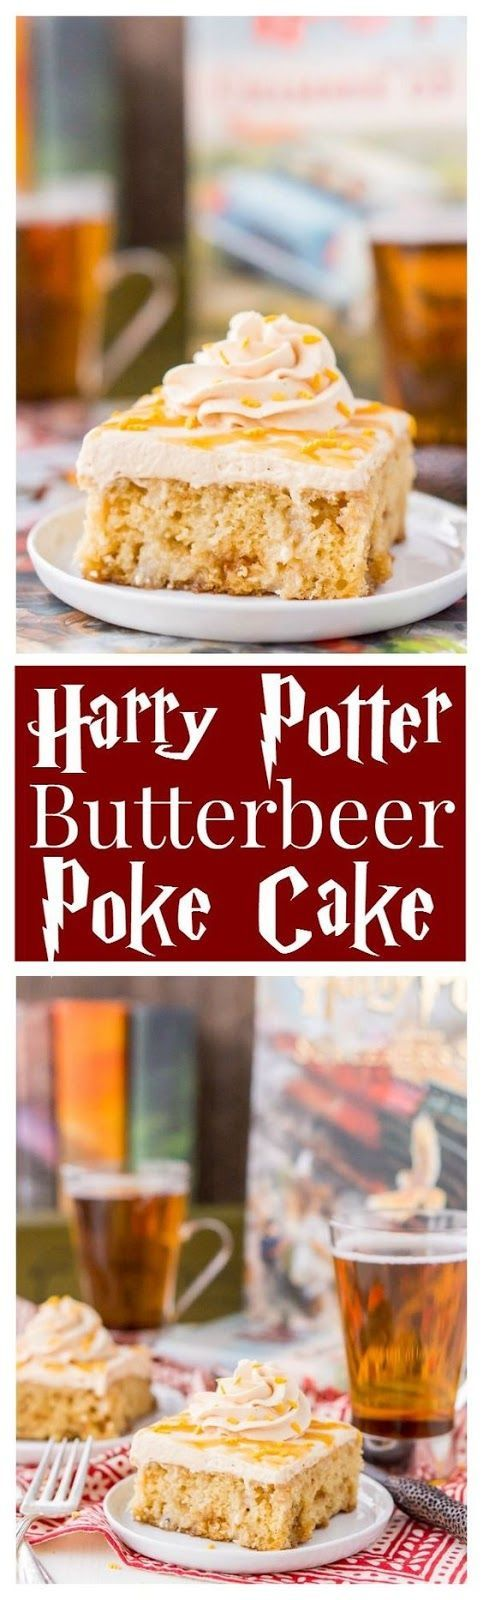 Harry Potter Butterbeer Poke Cake